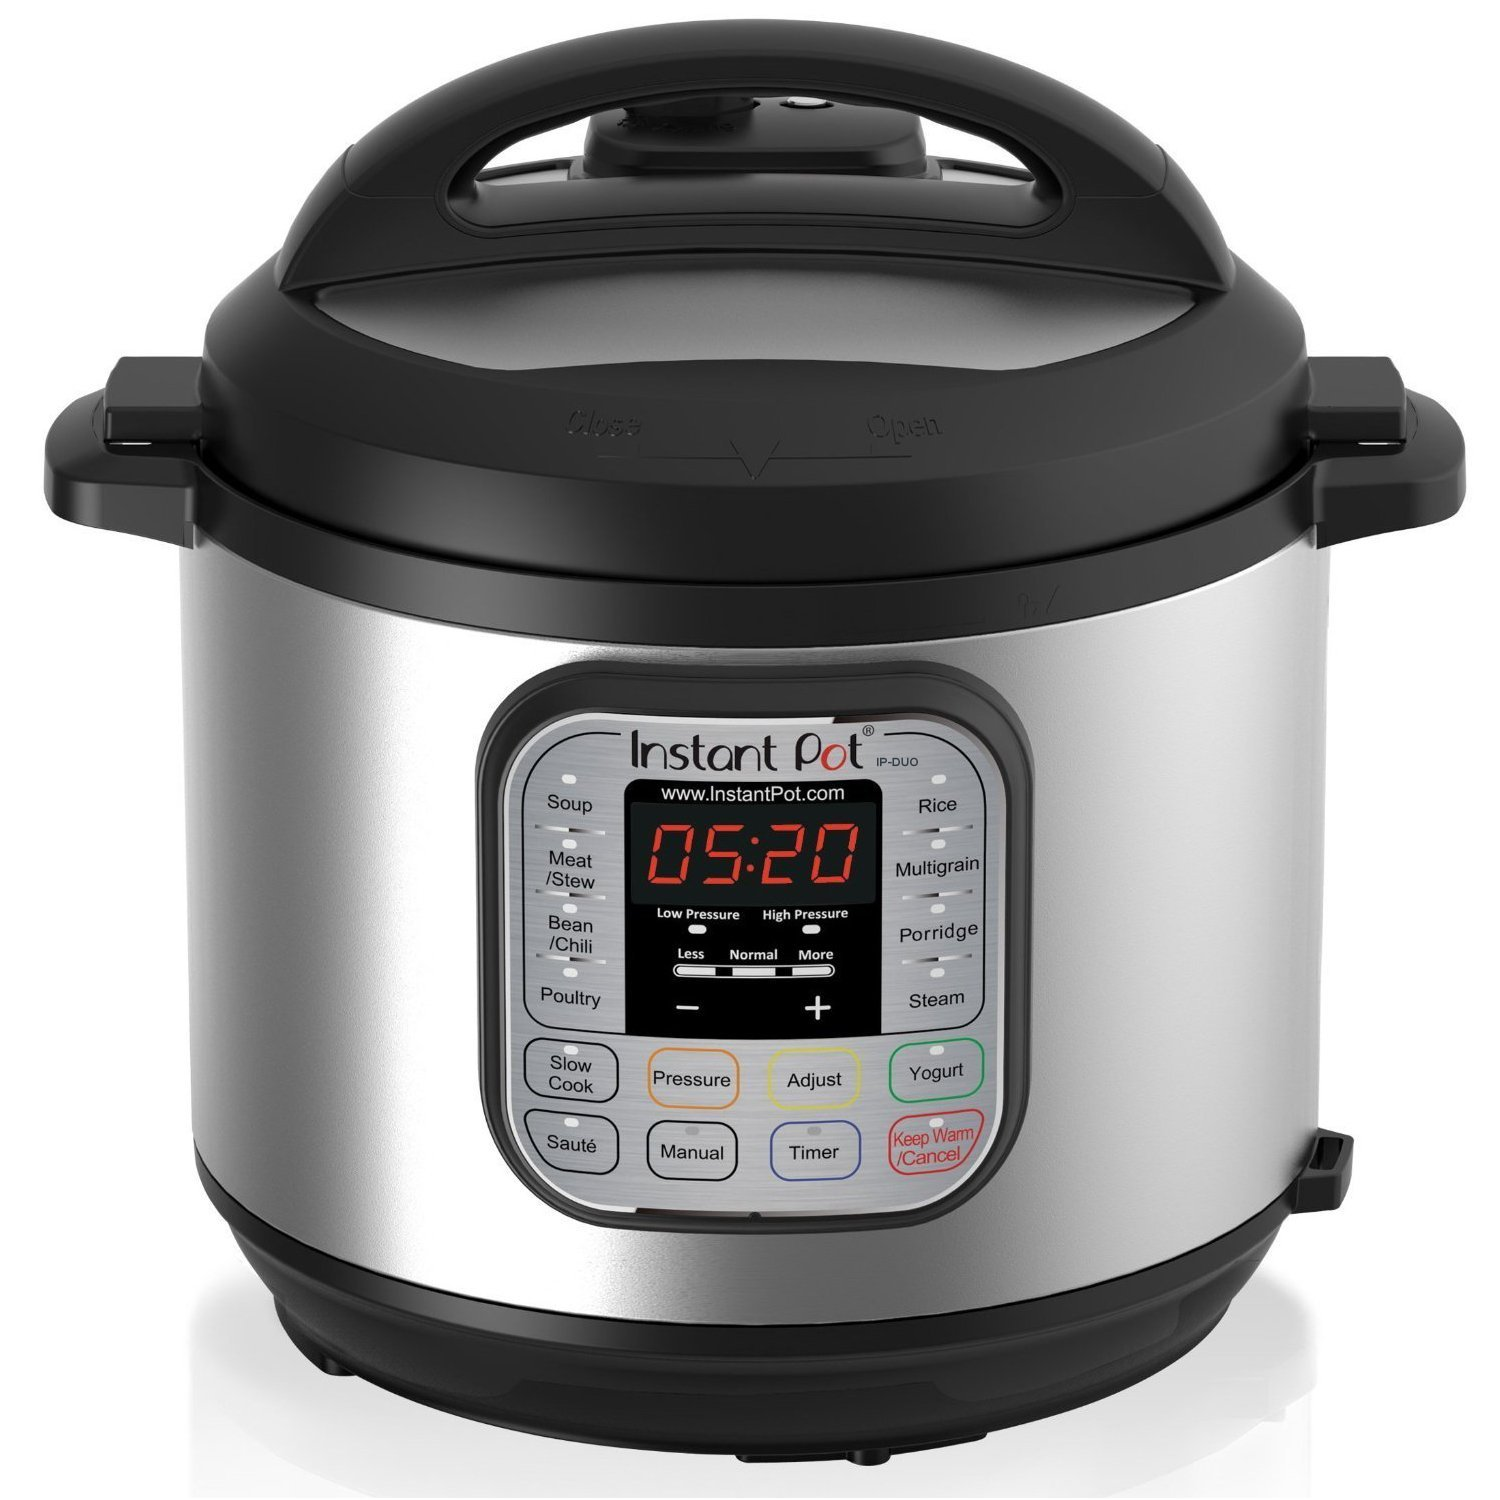 Instant Pot on Amazon